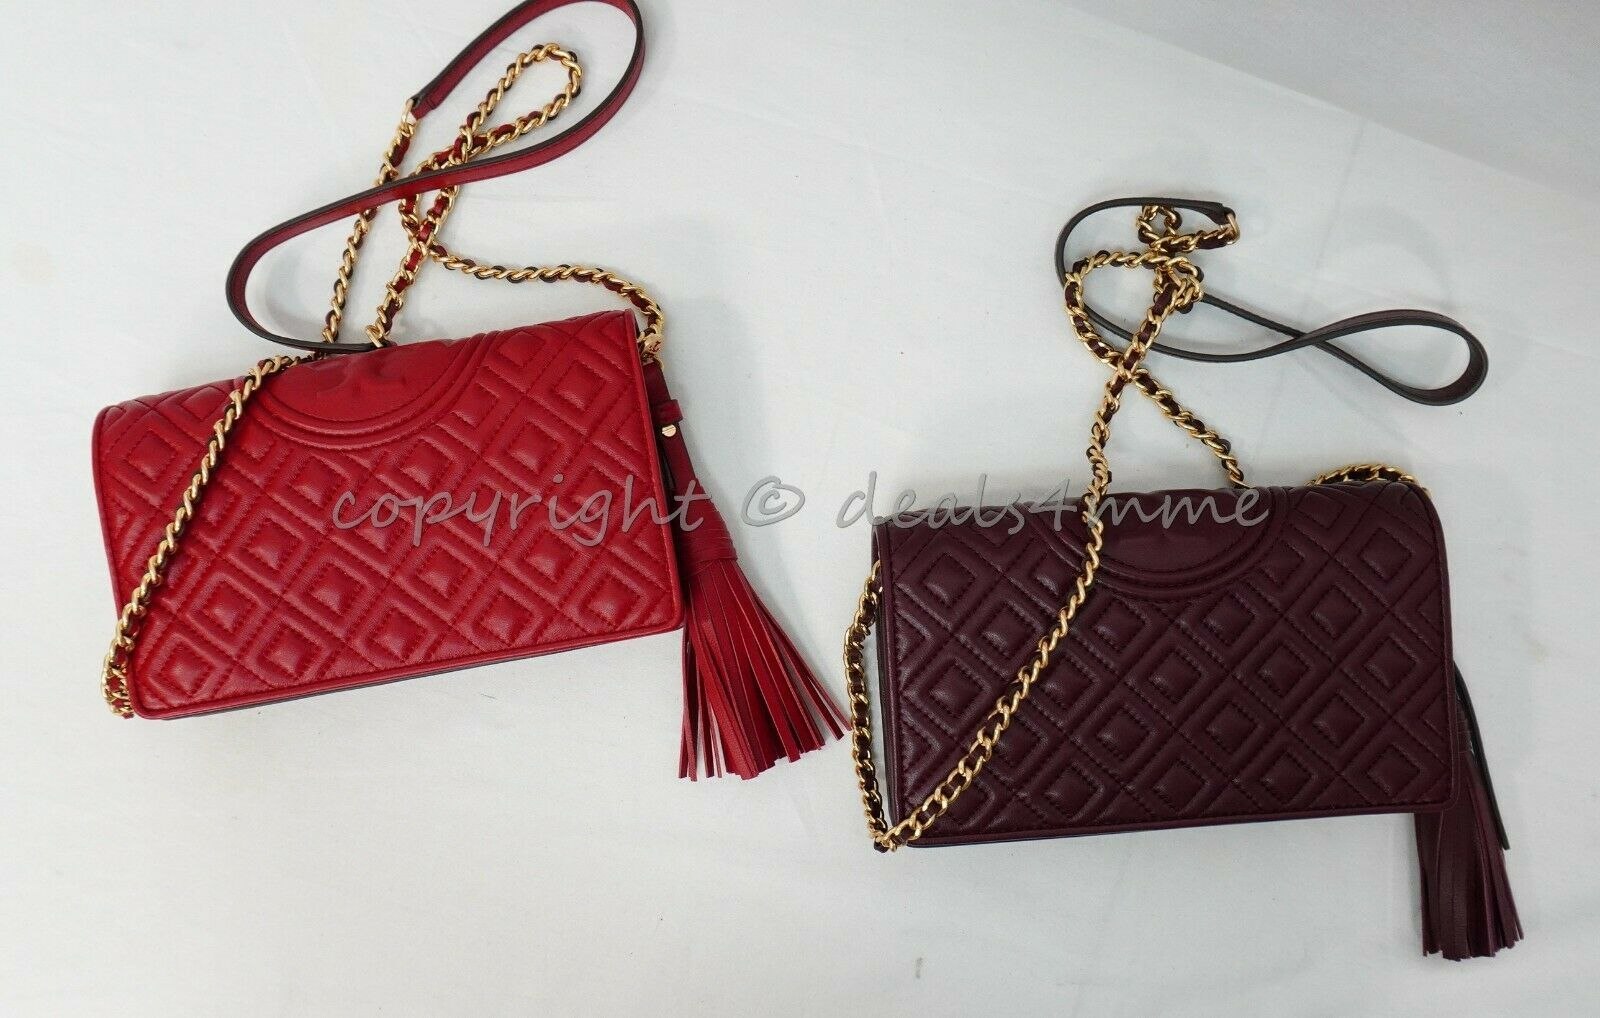 Primary image for NWT Tory Burch Fleming WOC/Wallet Crossbody Bag / Clutch in Claret and Red Apple